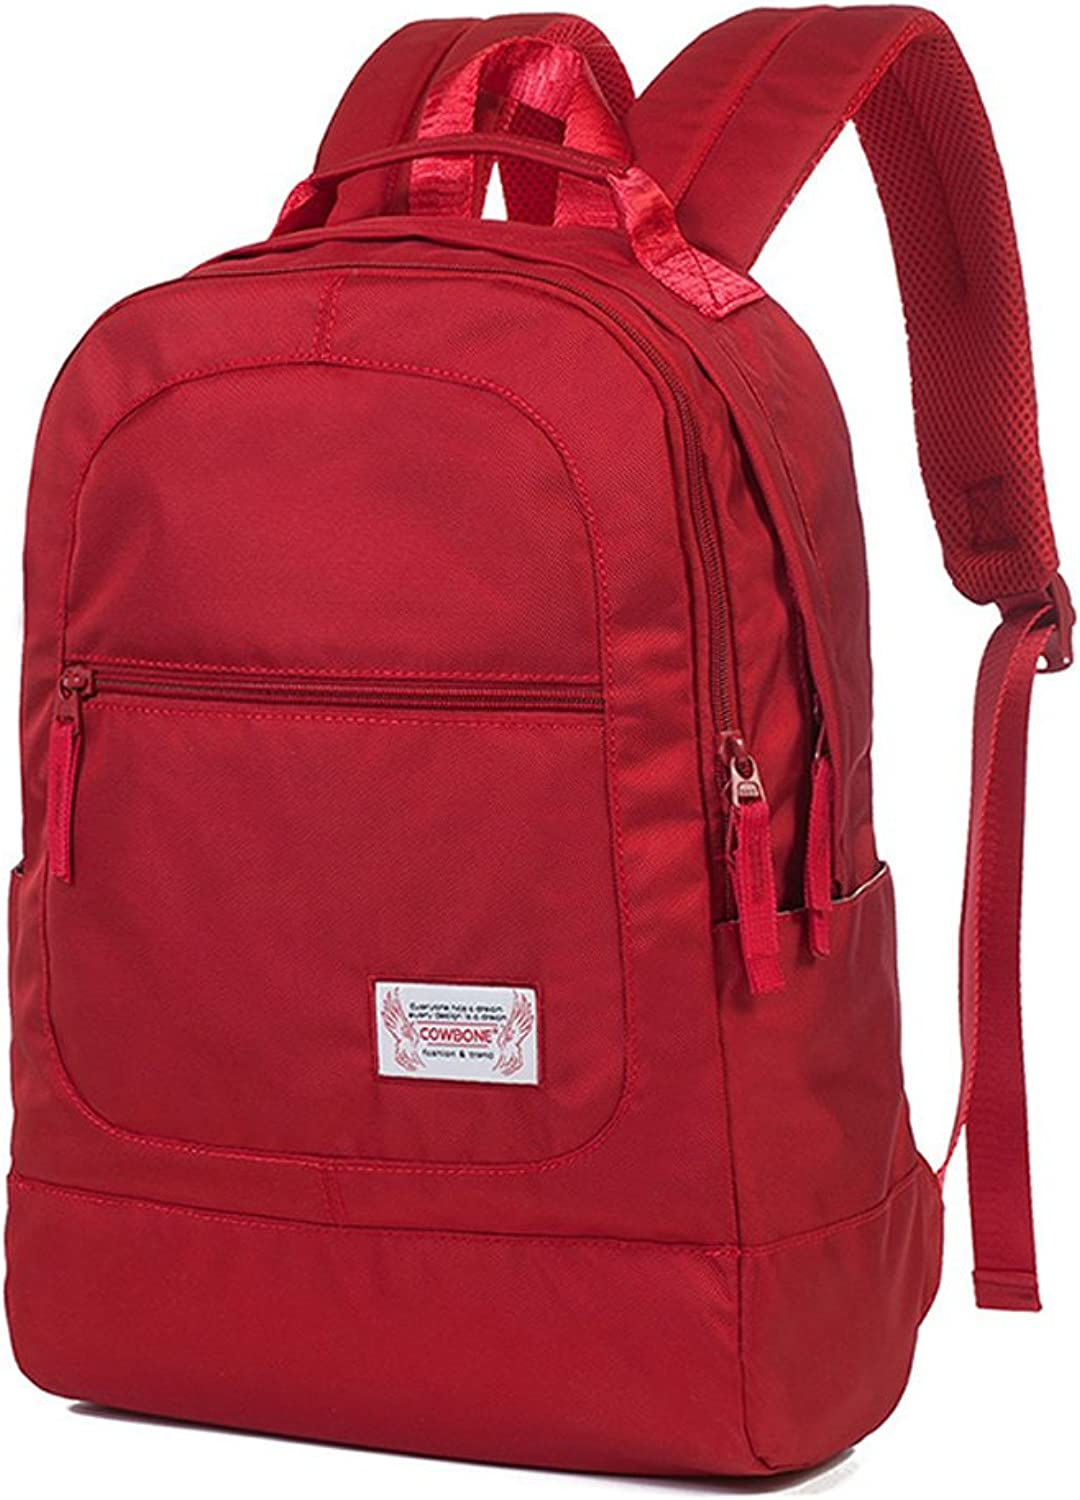 DEI QI Backpack Female College Wind Simple, Casual Travel Shopping Computer Backpack Waterproof, red Zipper Sports New Backpack